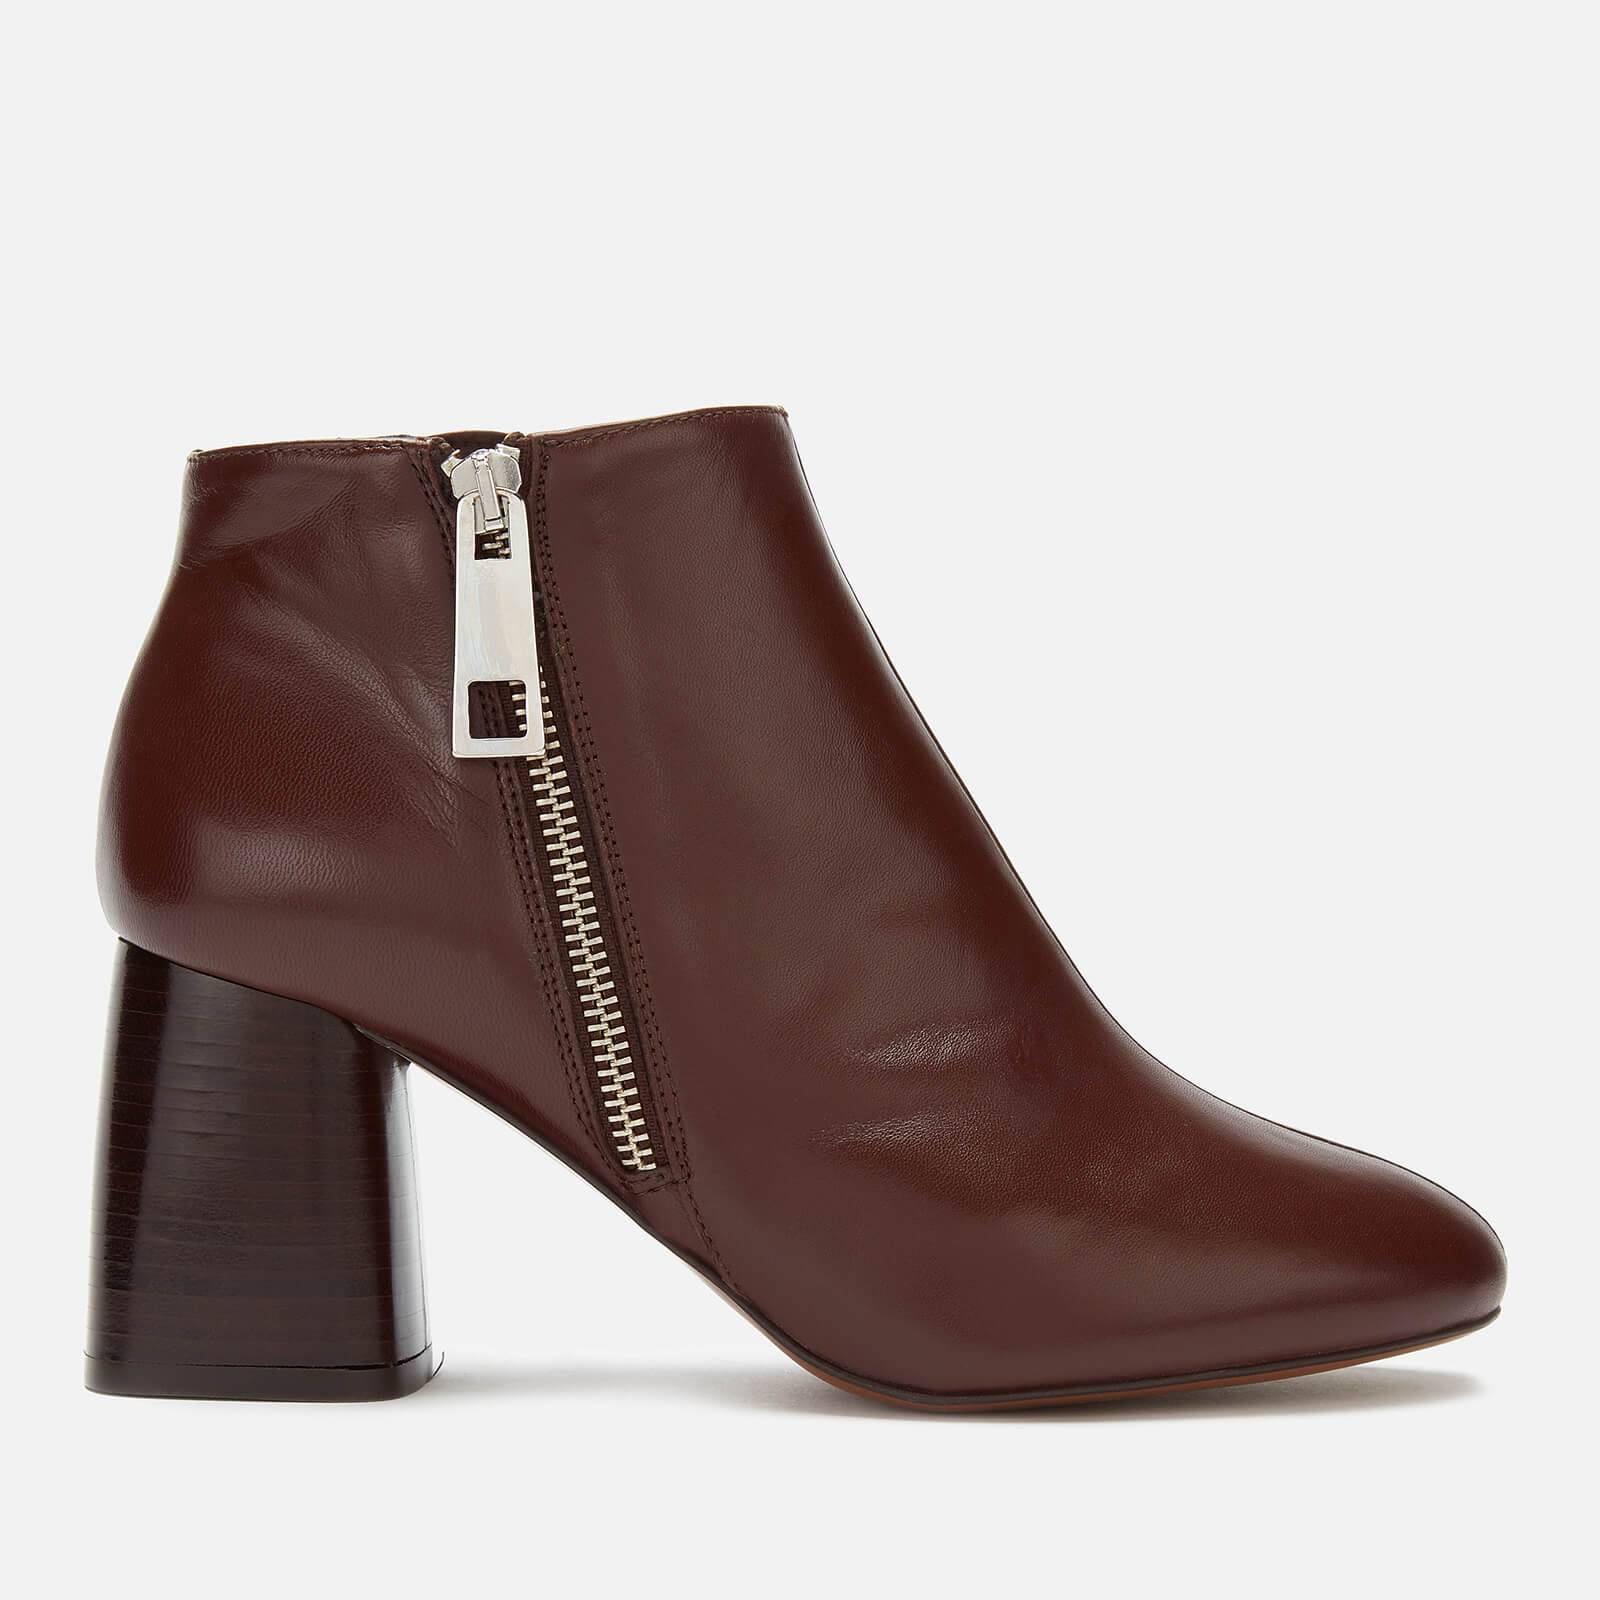 Whistles Women's Pippa Side Zip Boots - Brown - UK 7